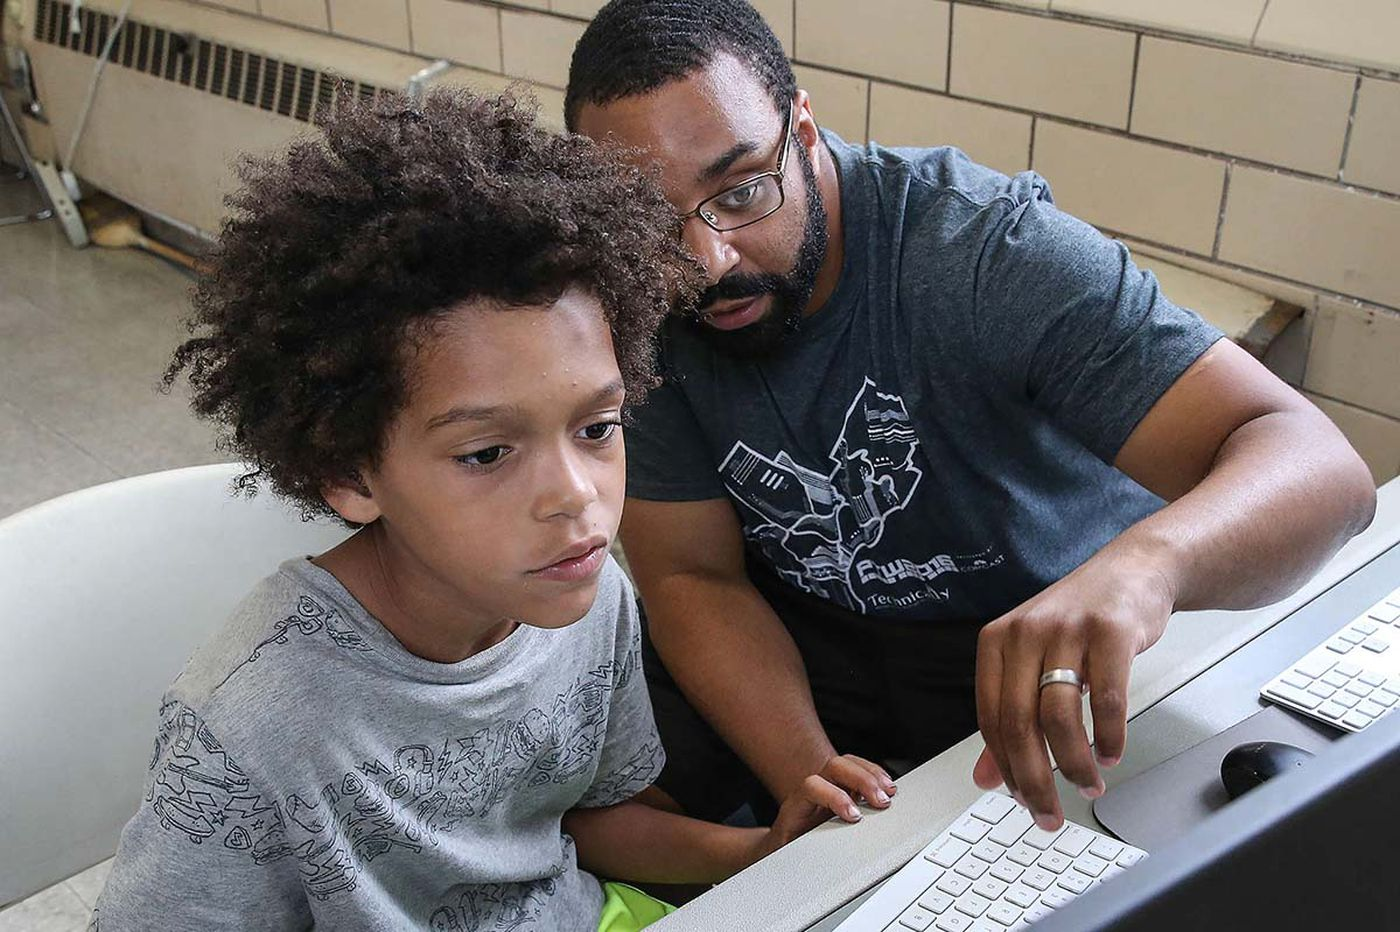 2018 Philadelphia Award goes to the founder of Coded by Kids